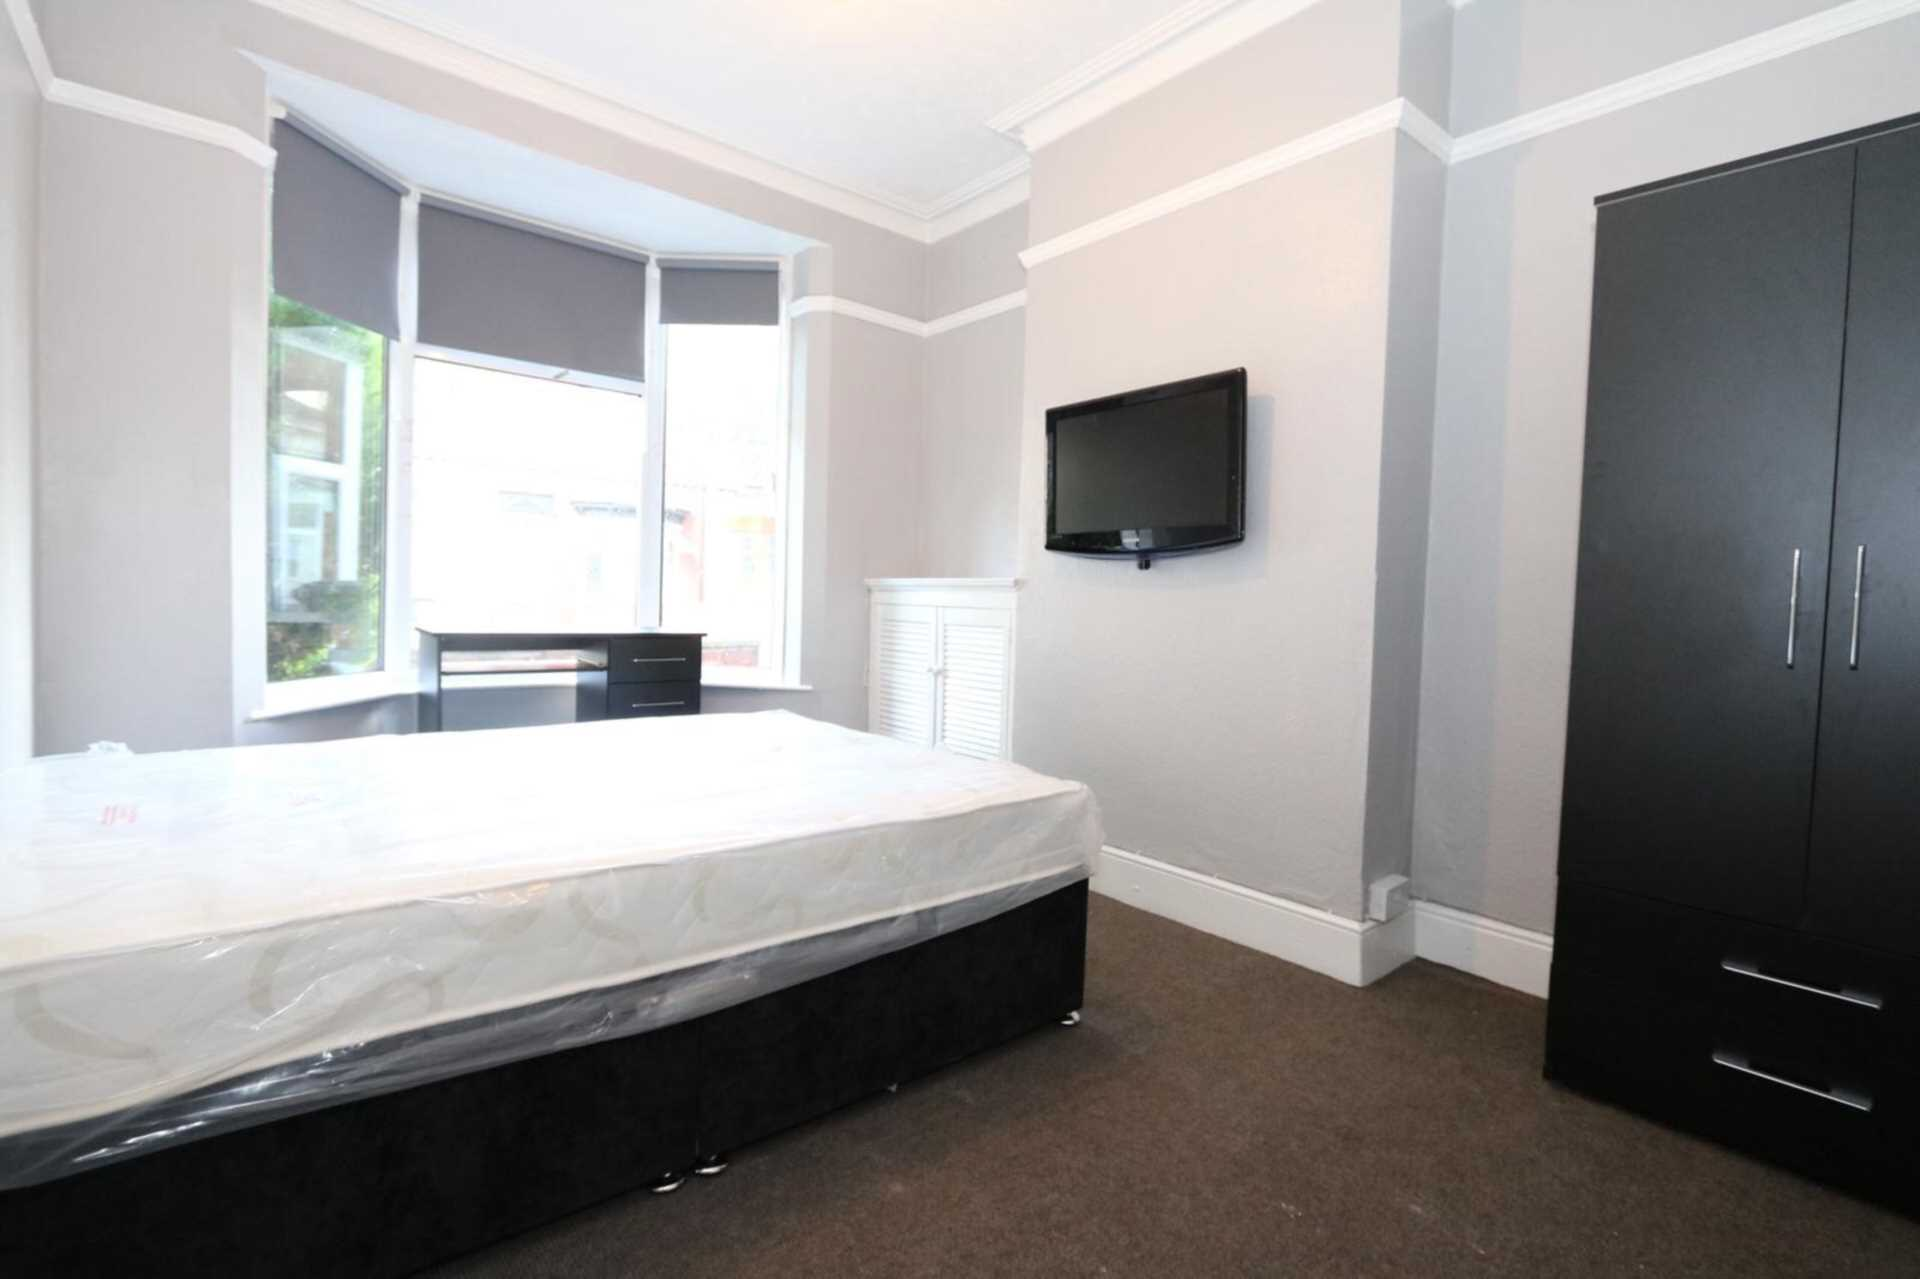 Gaul Street - 3 bedroom student home fully furnished, WIFI & bills included - NO FEES, Image 2